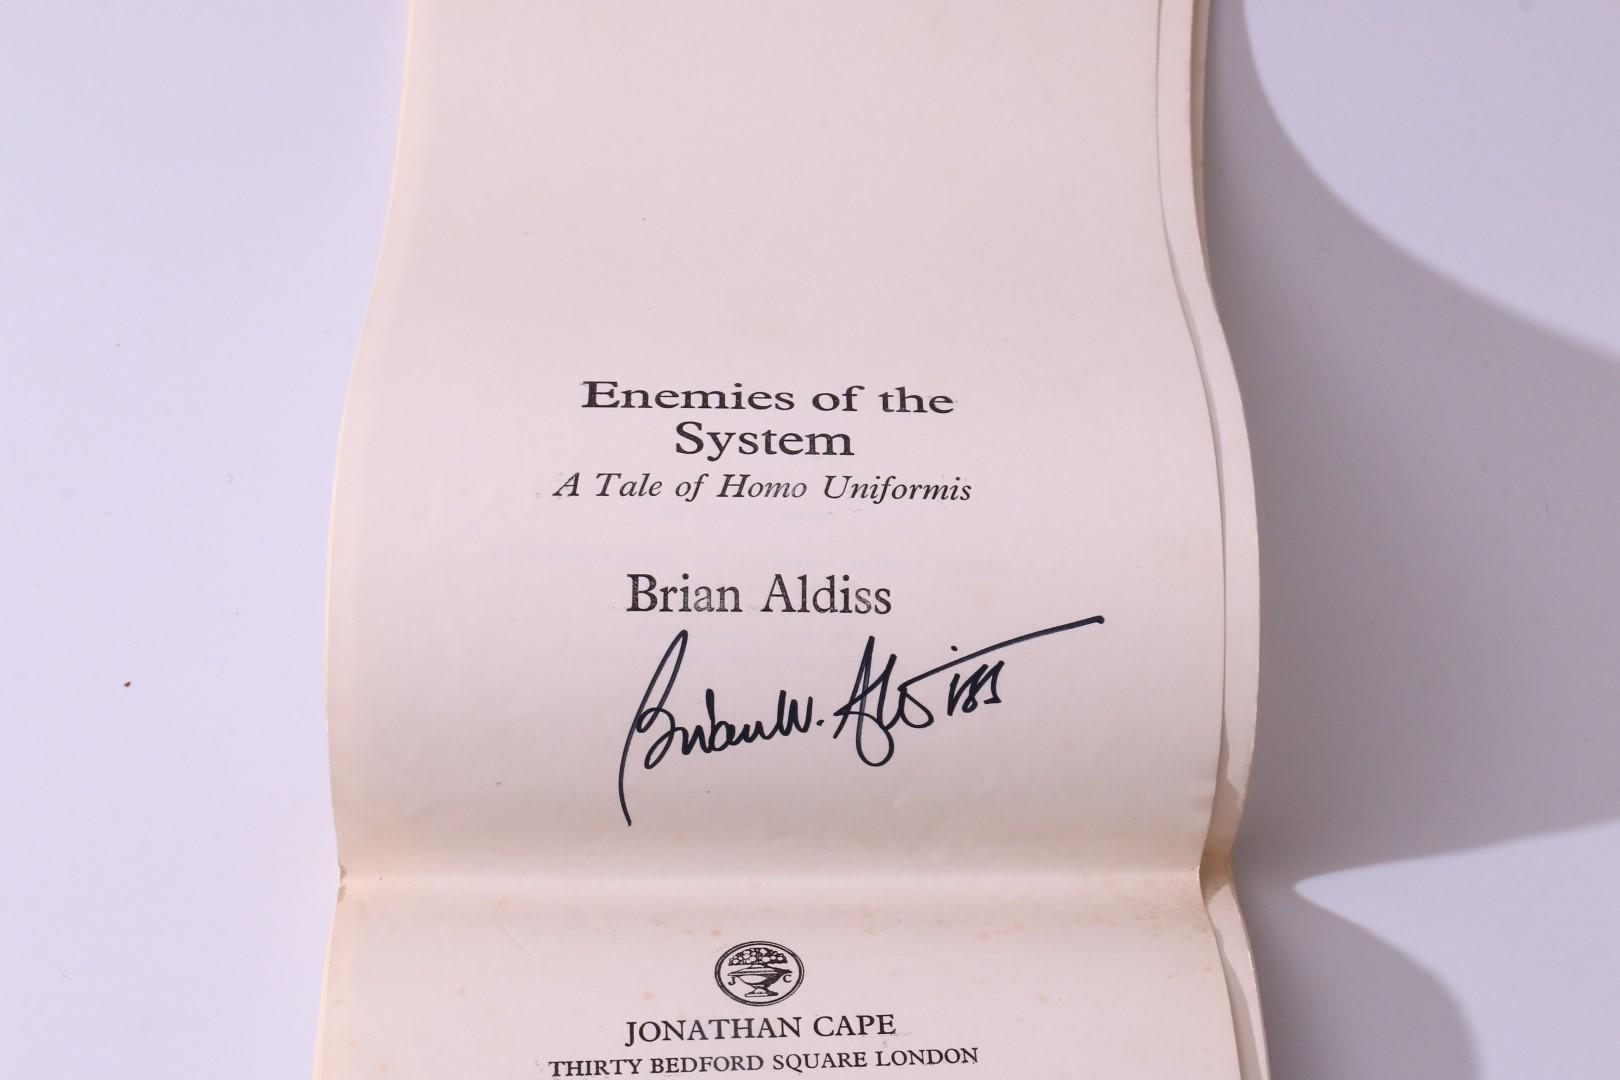 Brian Aldiss - Enemies of the System: A Tale of Homo Uniformis - Jonathan Cape, 1978, Proof. Signed